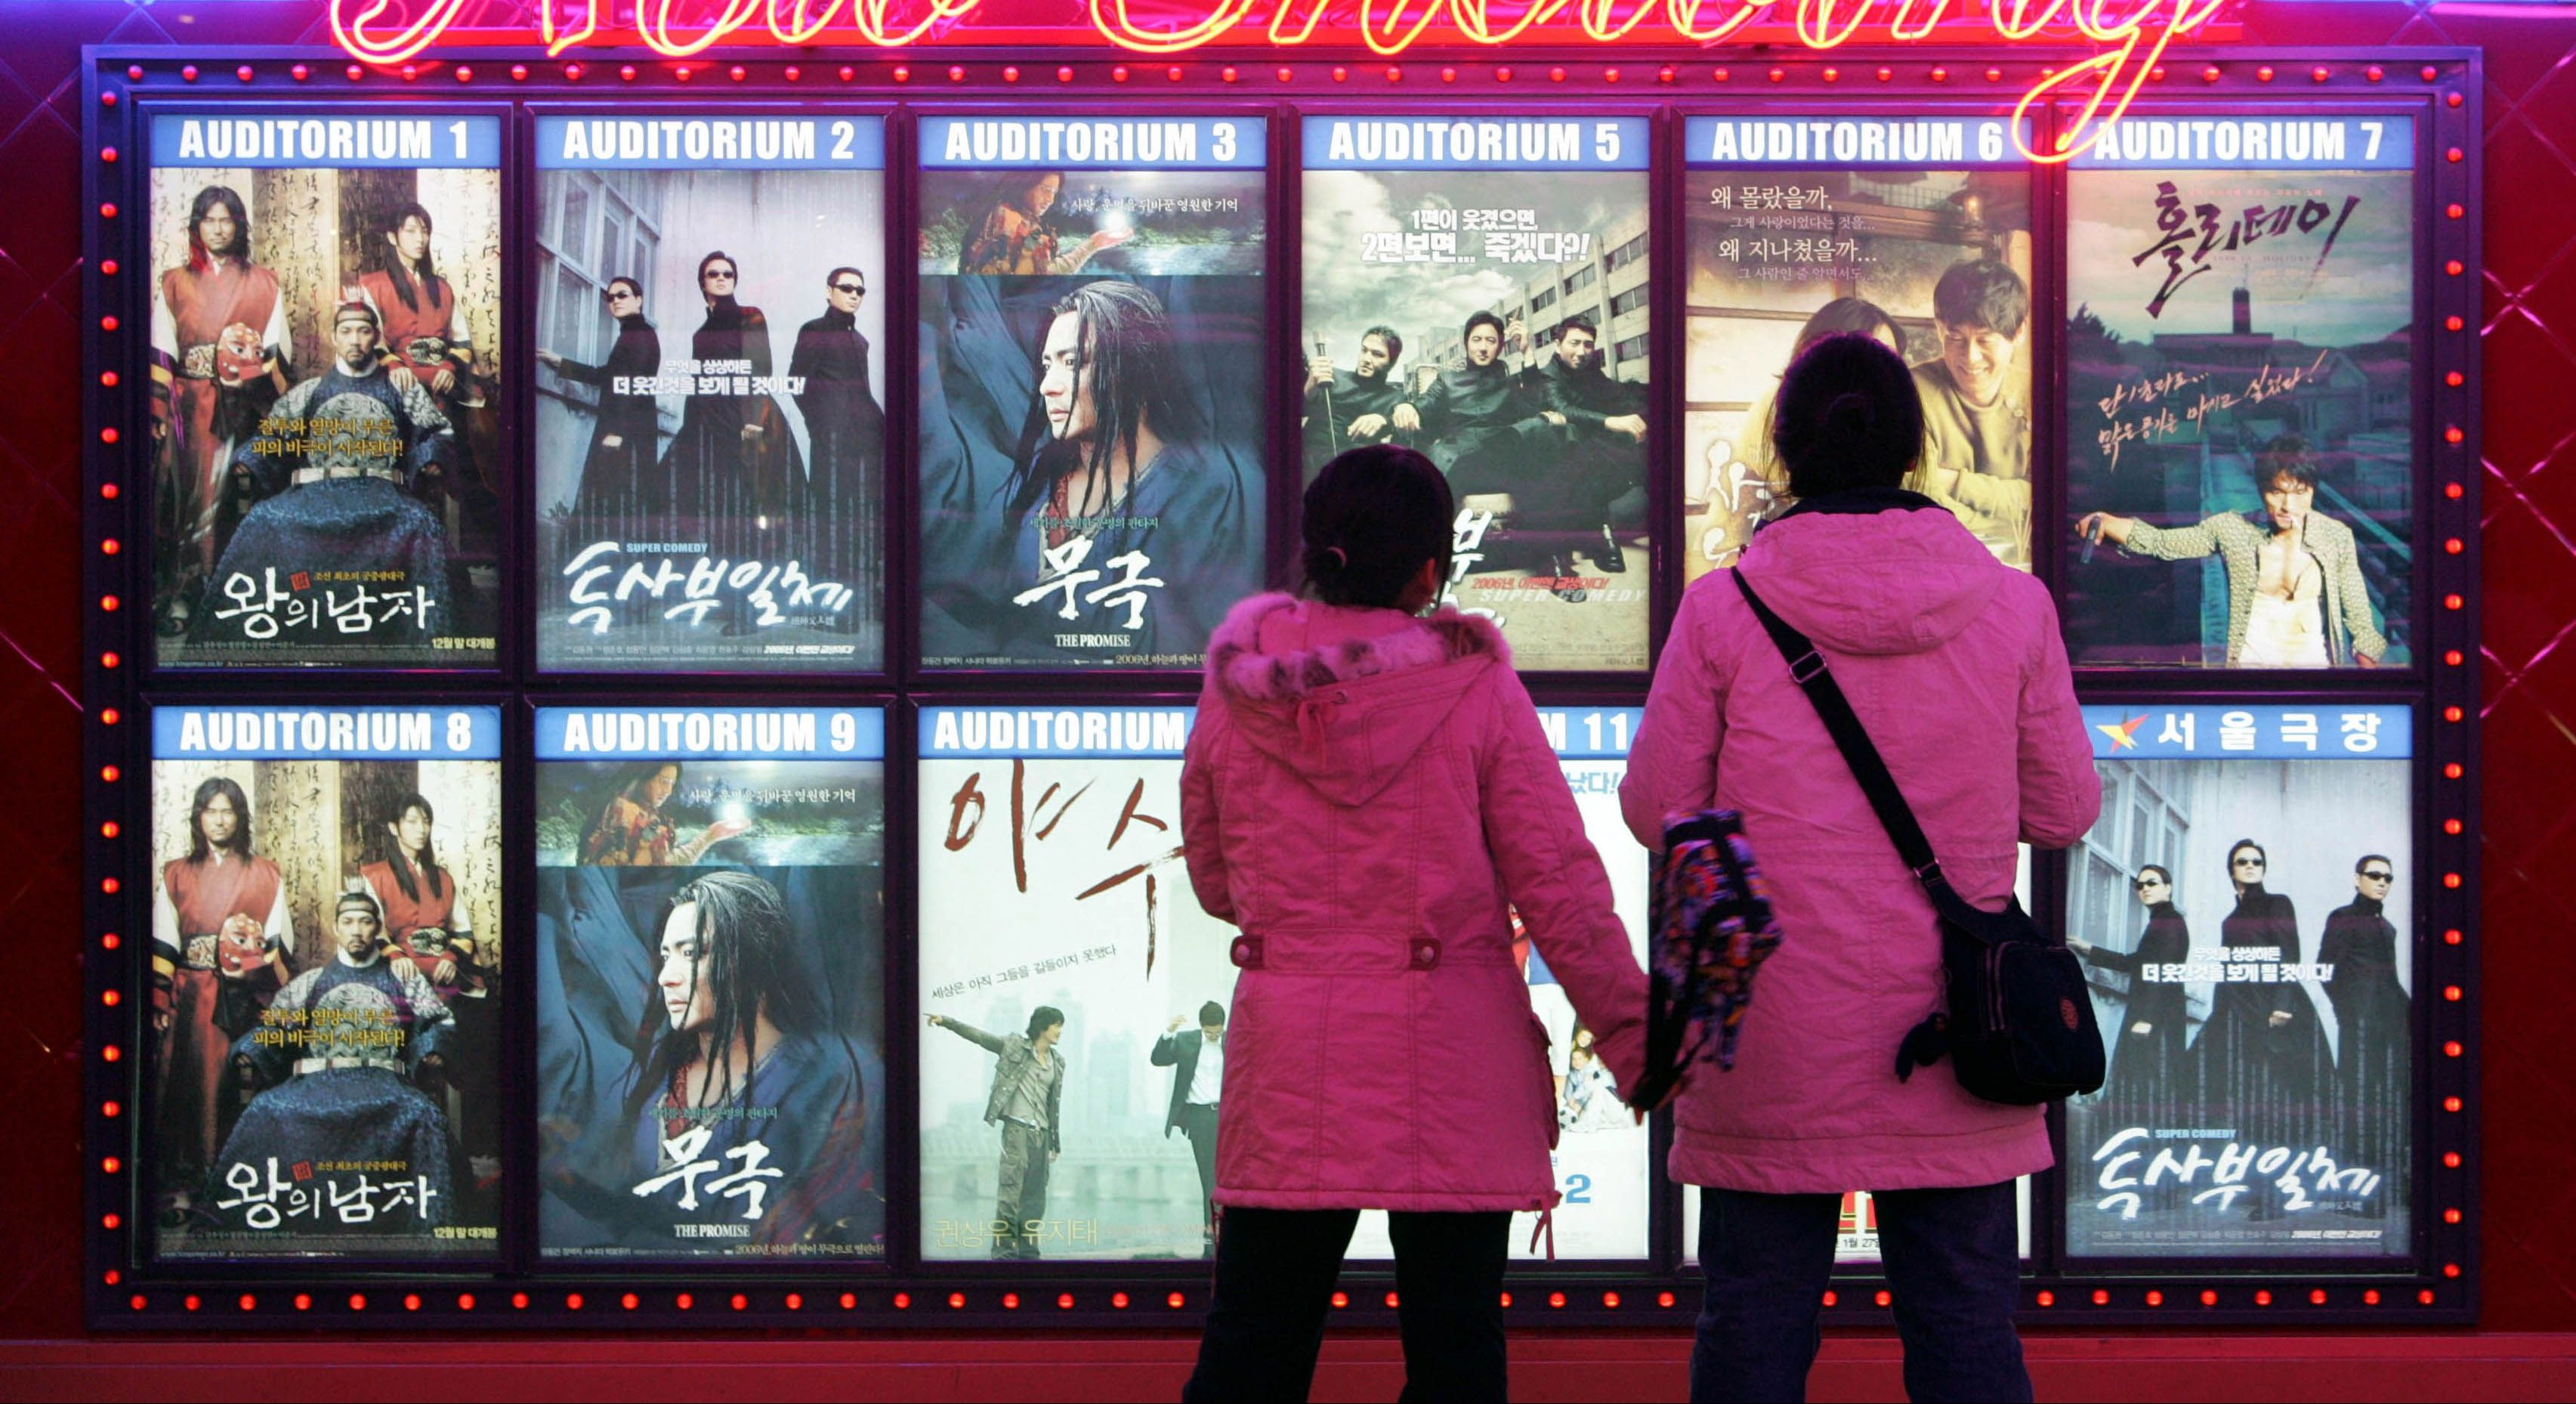 Cinema chains are trying to cash in on South Koreans having more free time